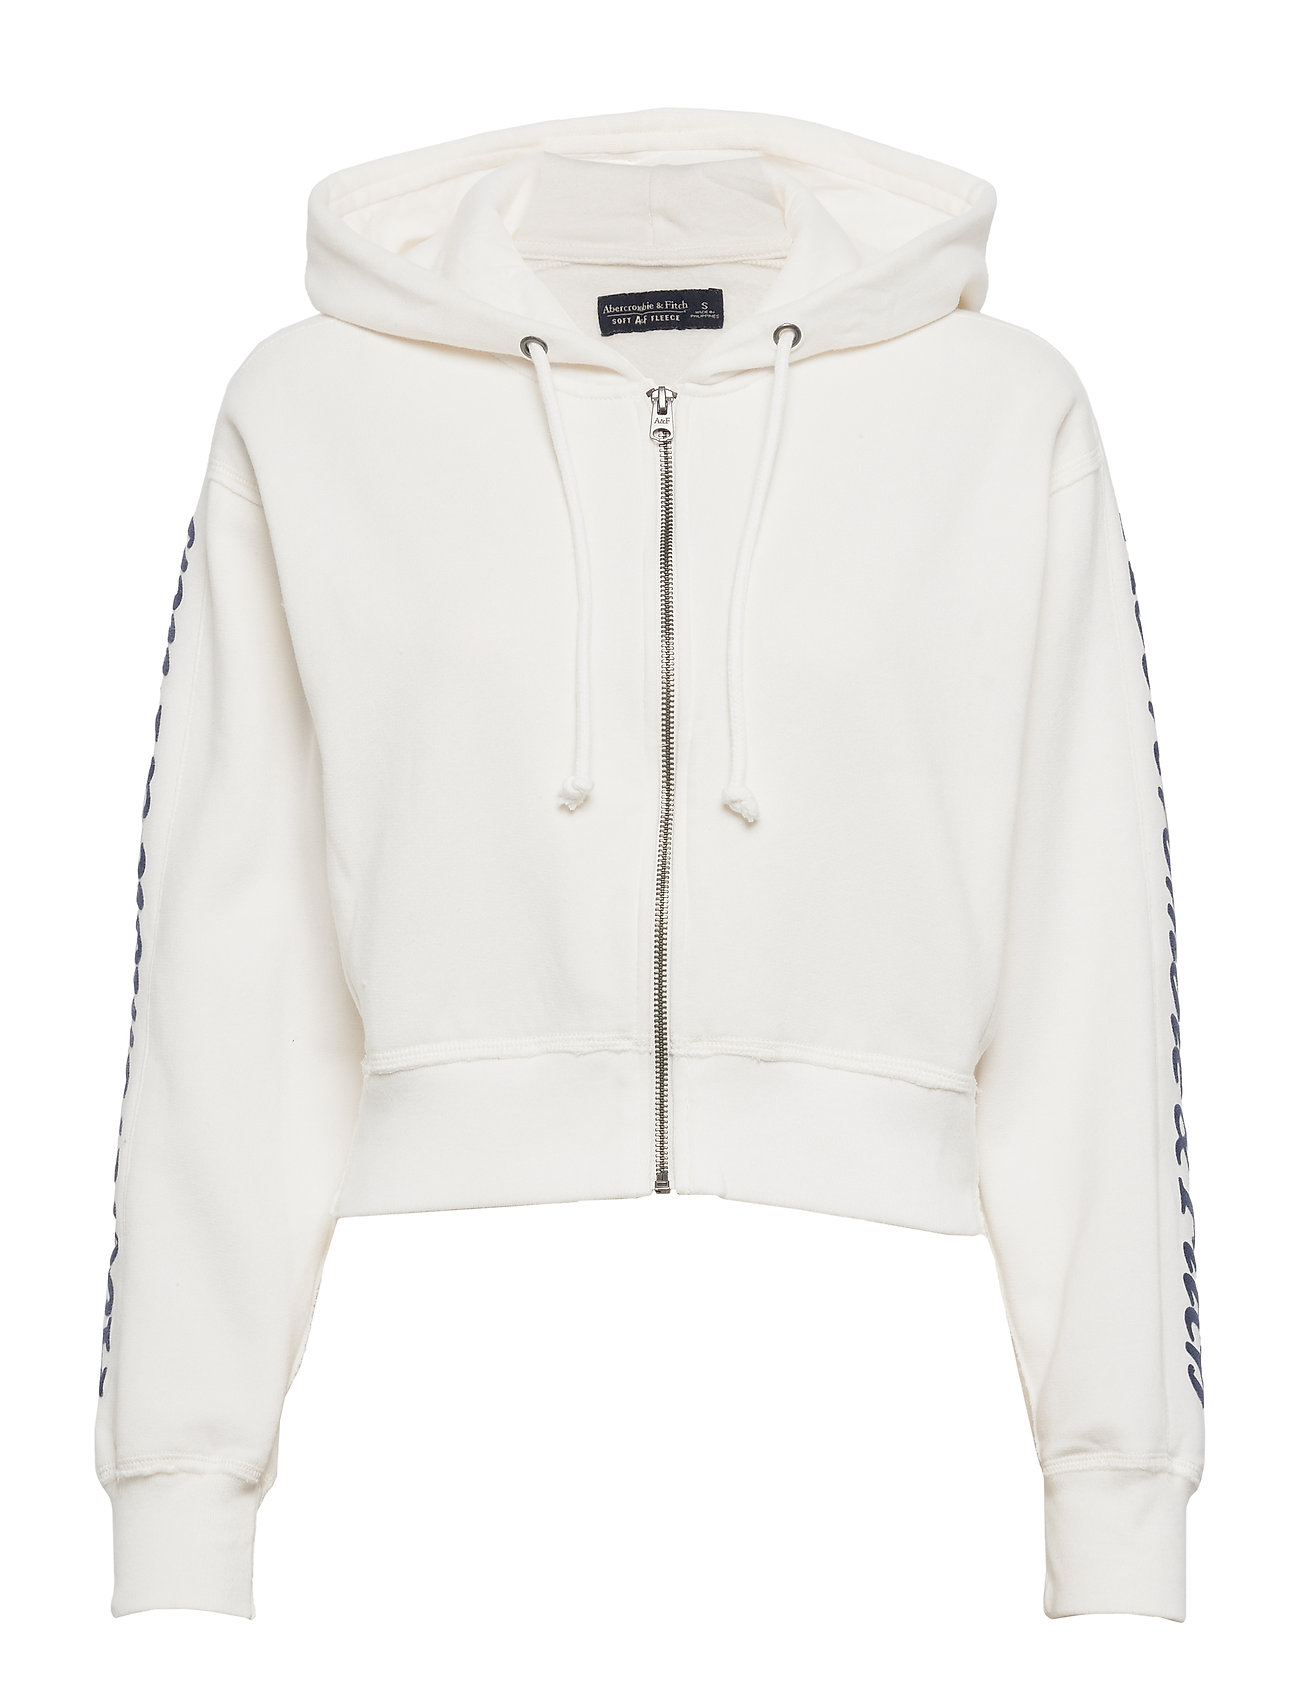 Abercrombie & Fitch Trend Logo - WHITE